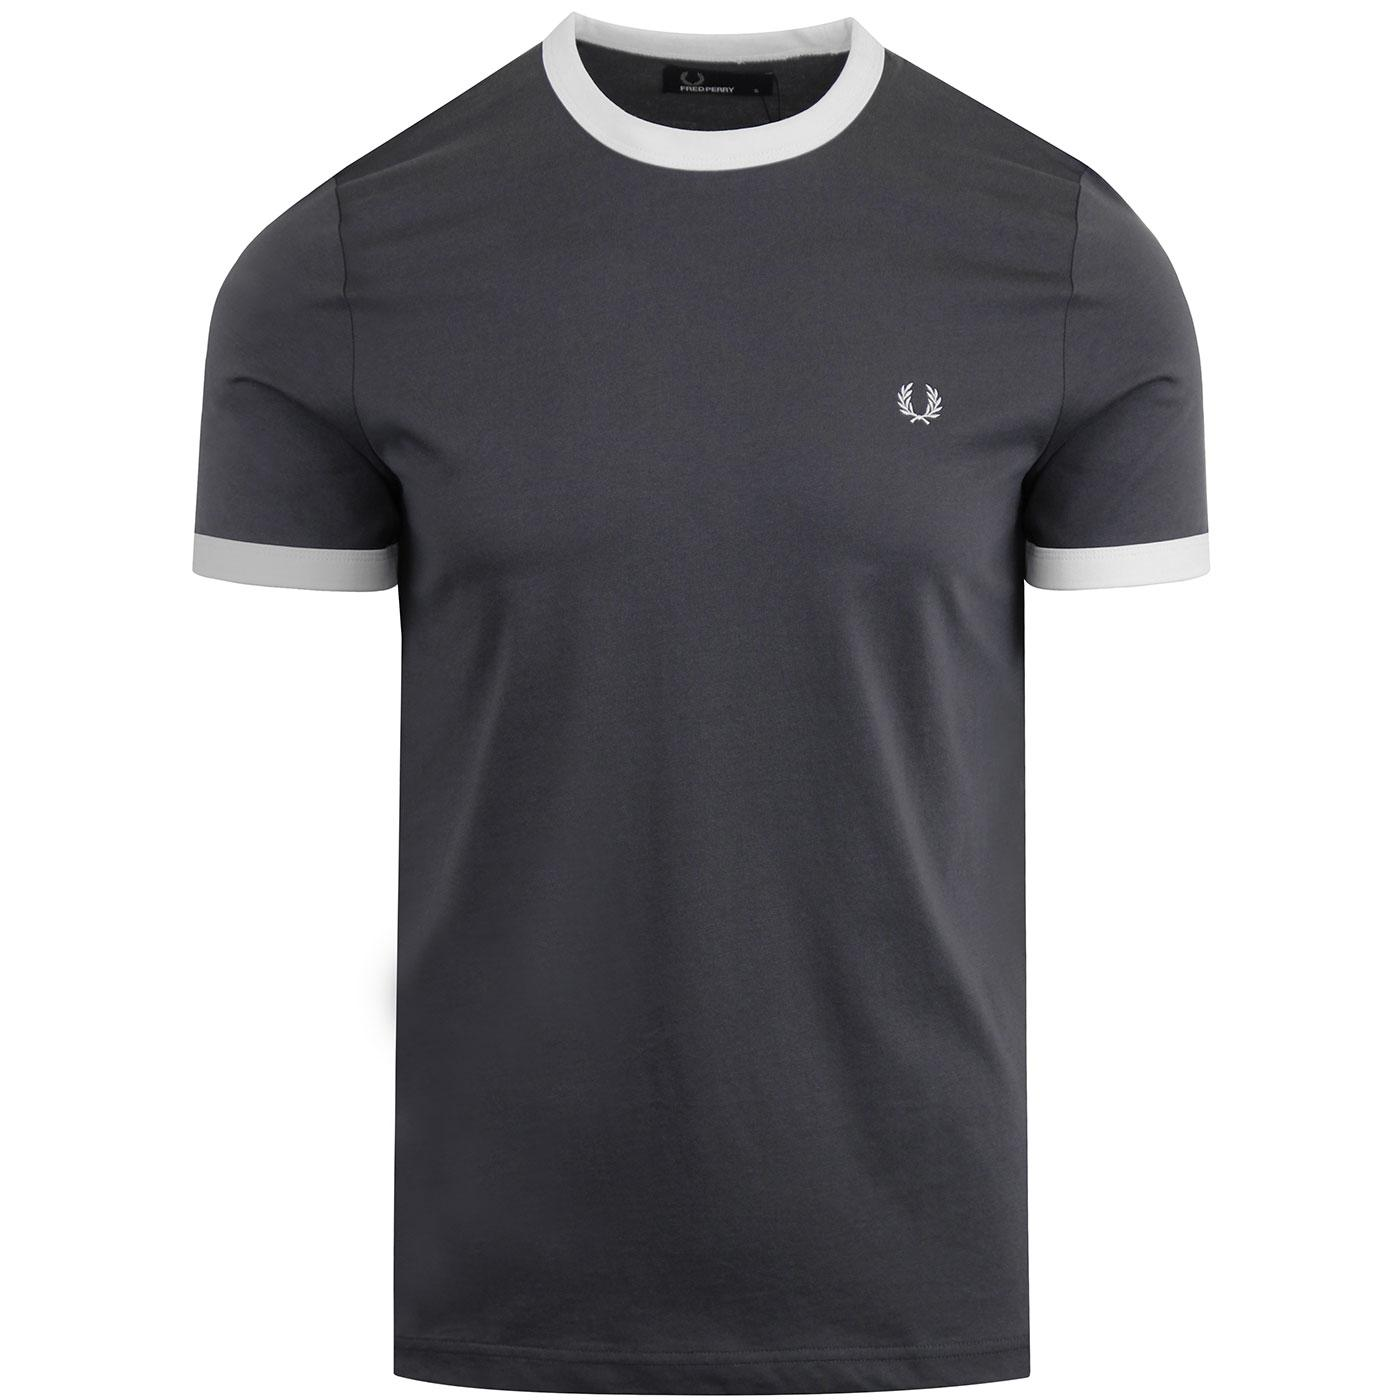 FRED PERRY Men's Retro Ringer T-shirt (Charcoal)